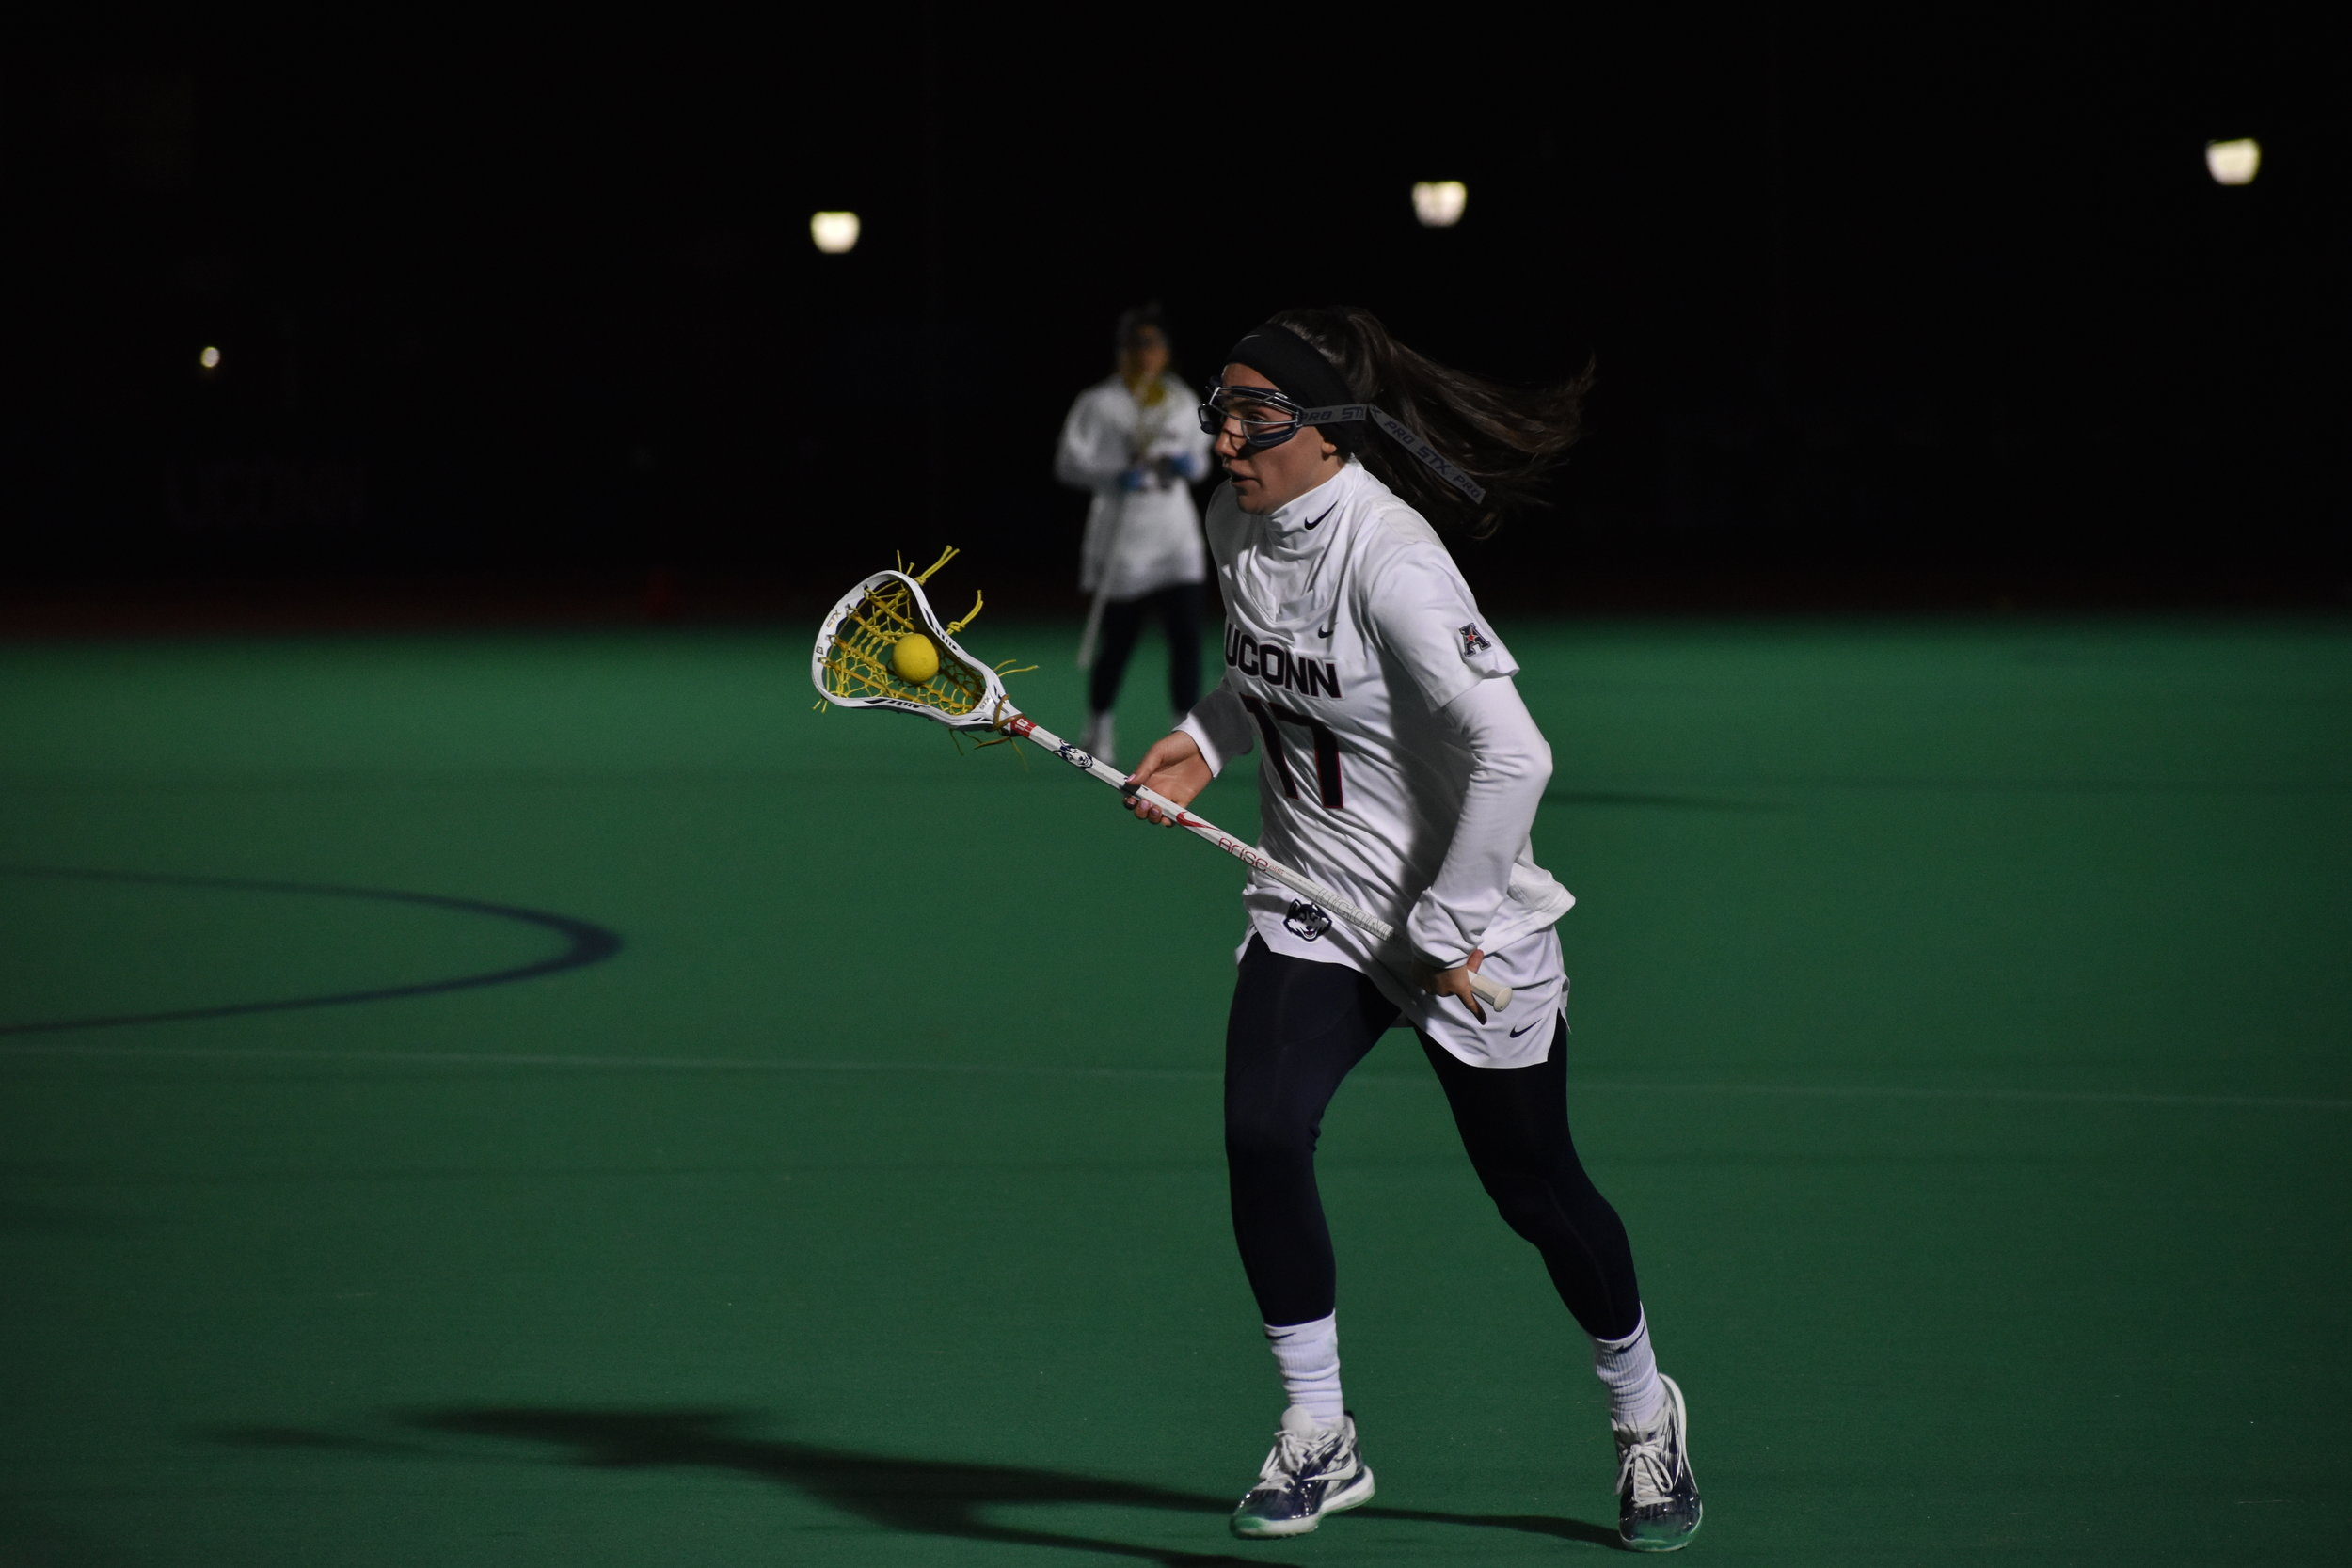 The UConn Women's Lacrosse beat Bryant University 15 - 8 Tuesday night in the Sherman Family Sports Complex. The Huskies were able to quickly capitalize on Bryant's mistakes and effectively generate opportunities; UConn consequently controlled the game. (Photo by Kevin Lindstrom/The Daily Campus)